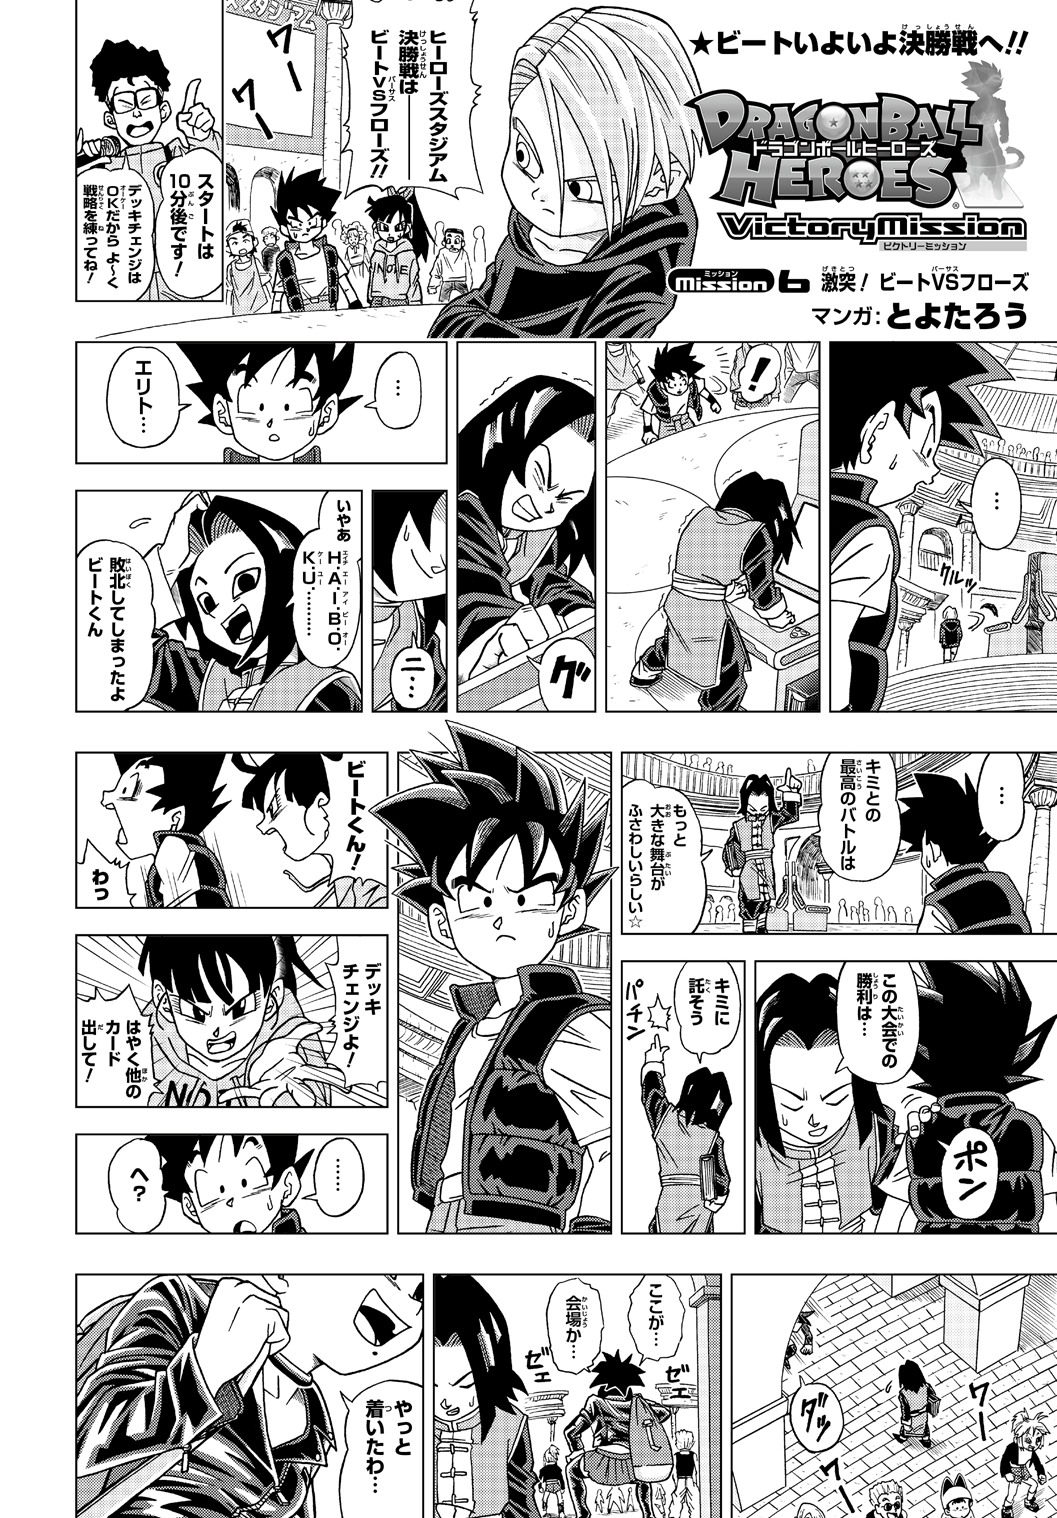 Dragon Ball Heroes Victory Mission Chapitre 006